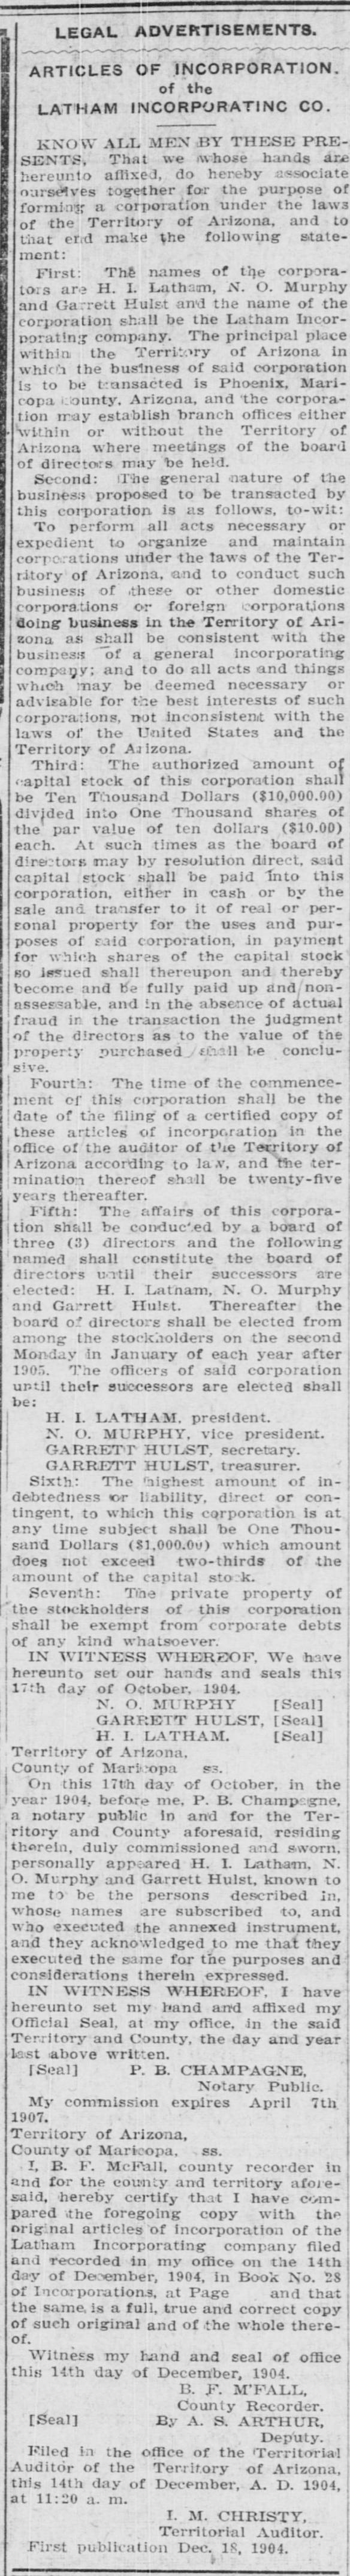 RepublicanMurphyArticles1904-12-19